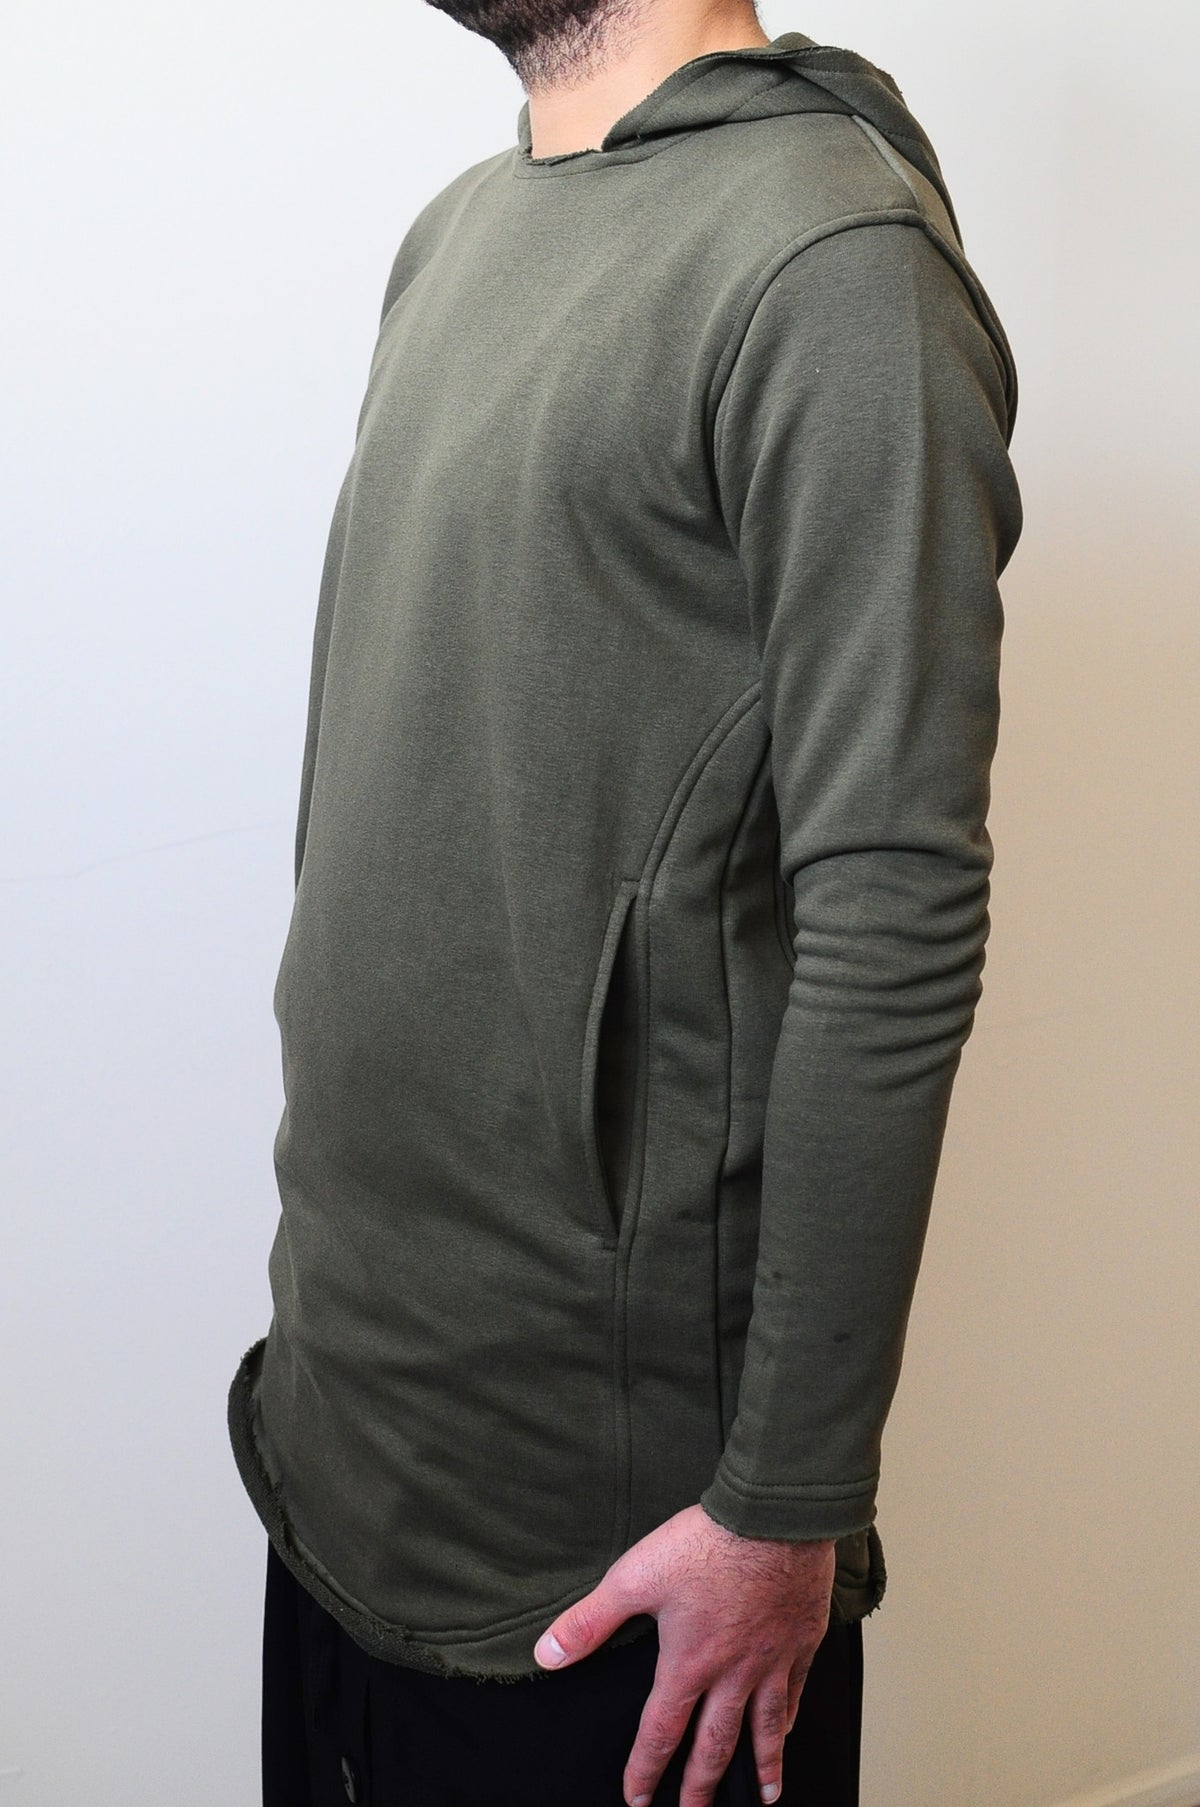 Cotton Wide Round Neck Asymmetric Raw Cut Seam Detail Sweaters Hoodie